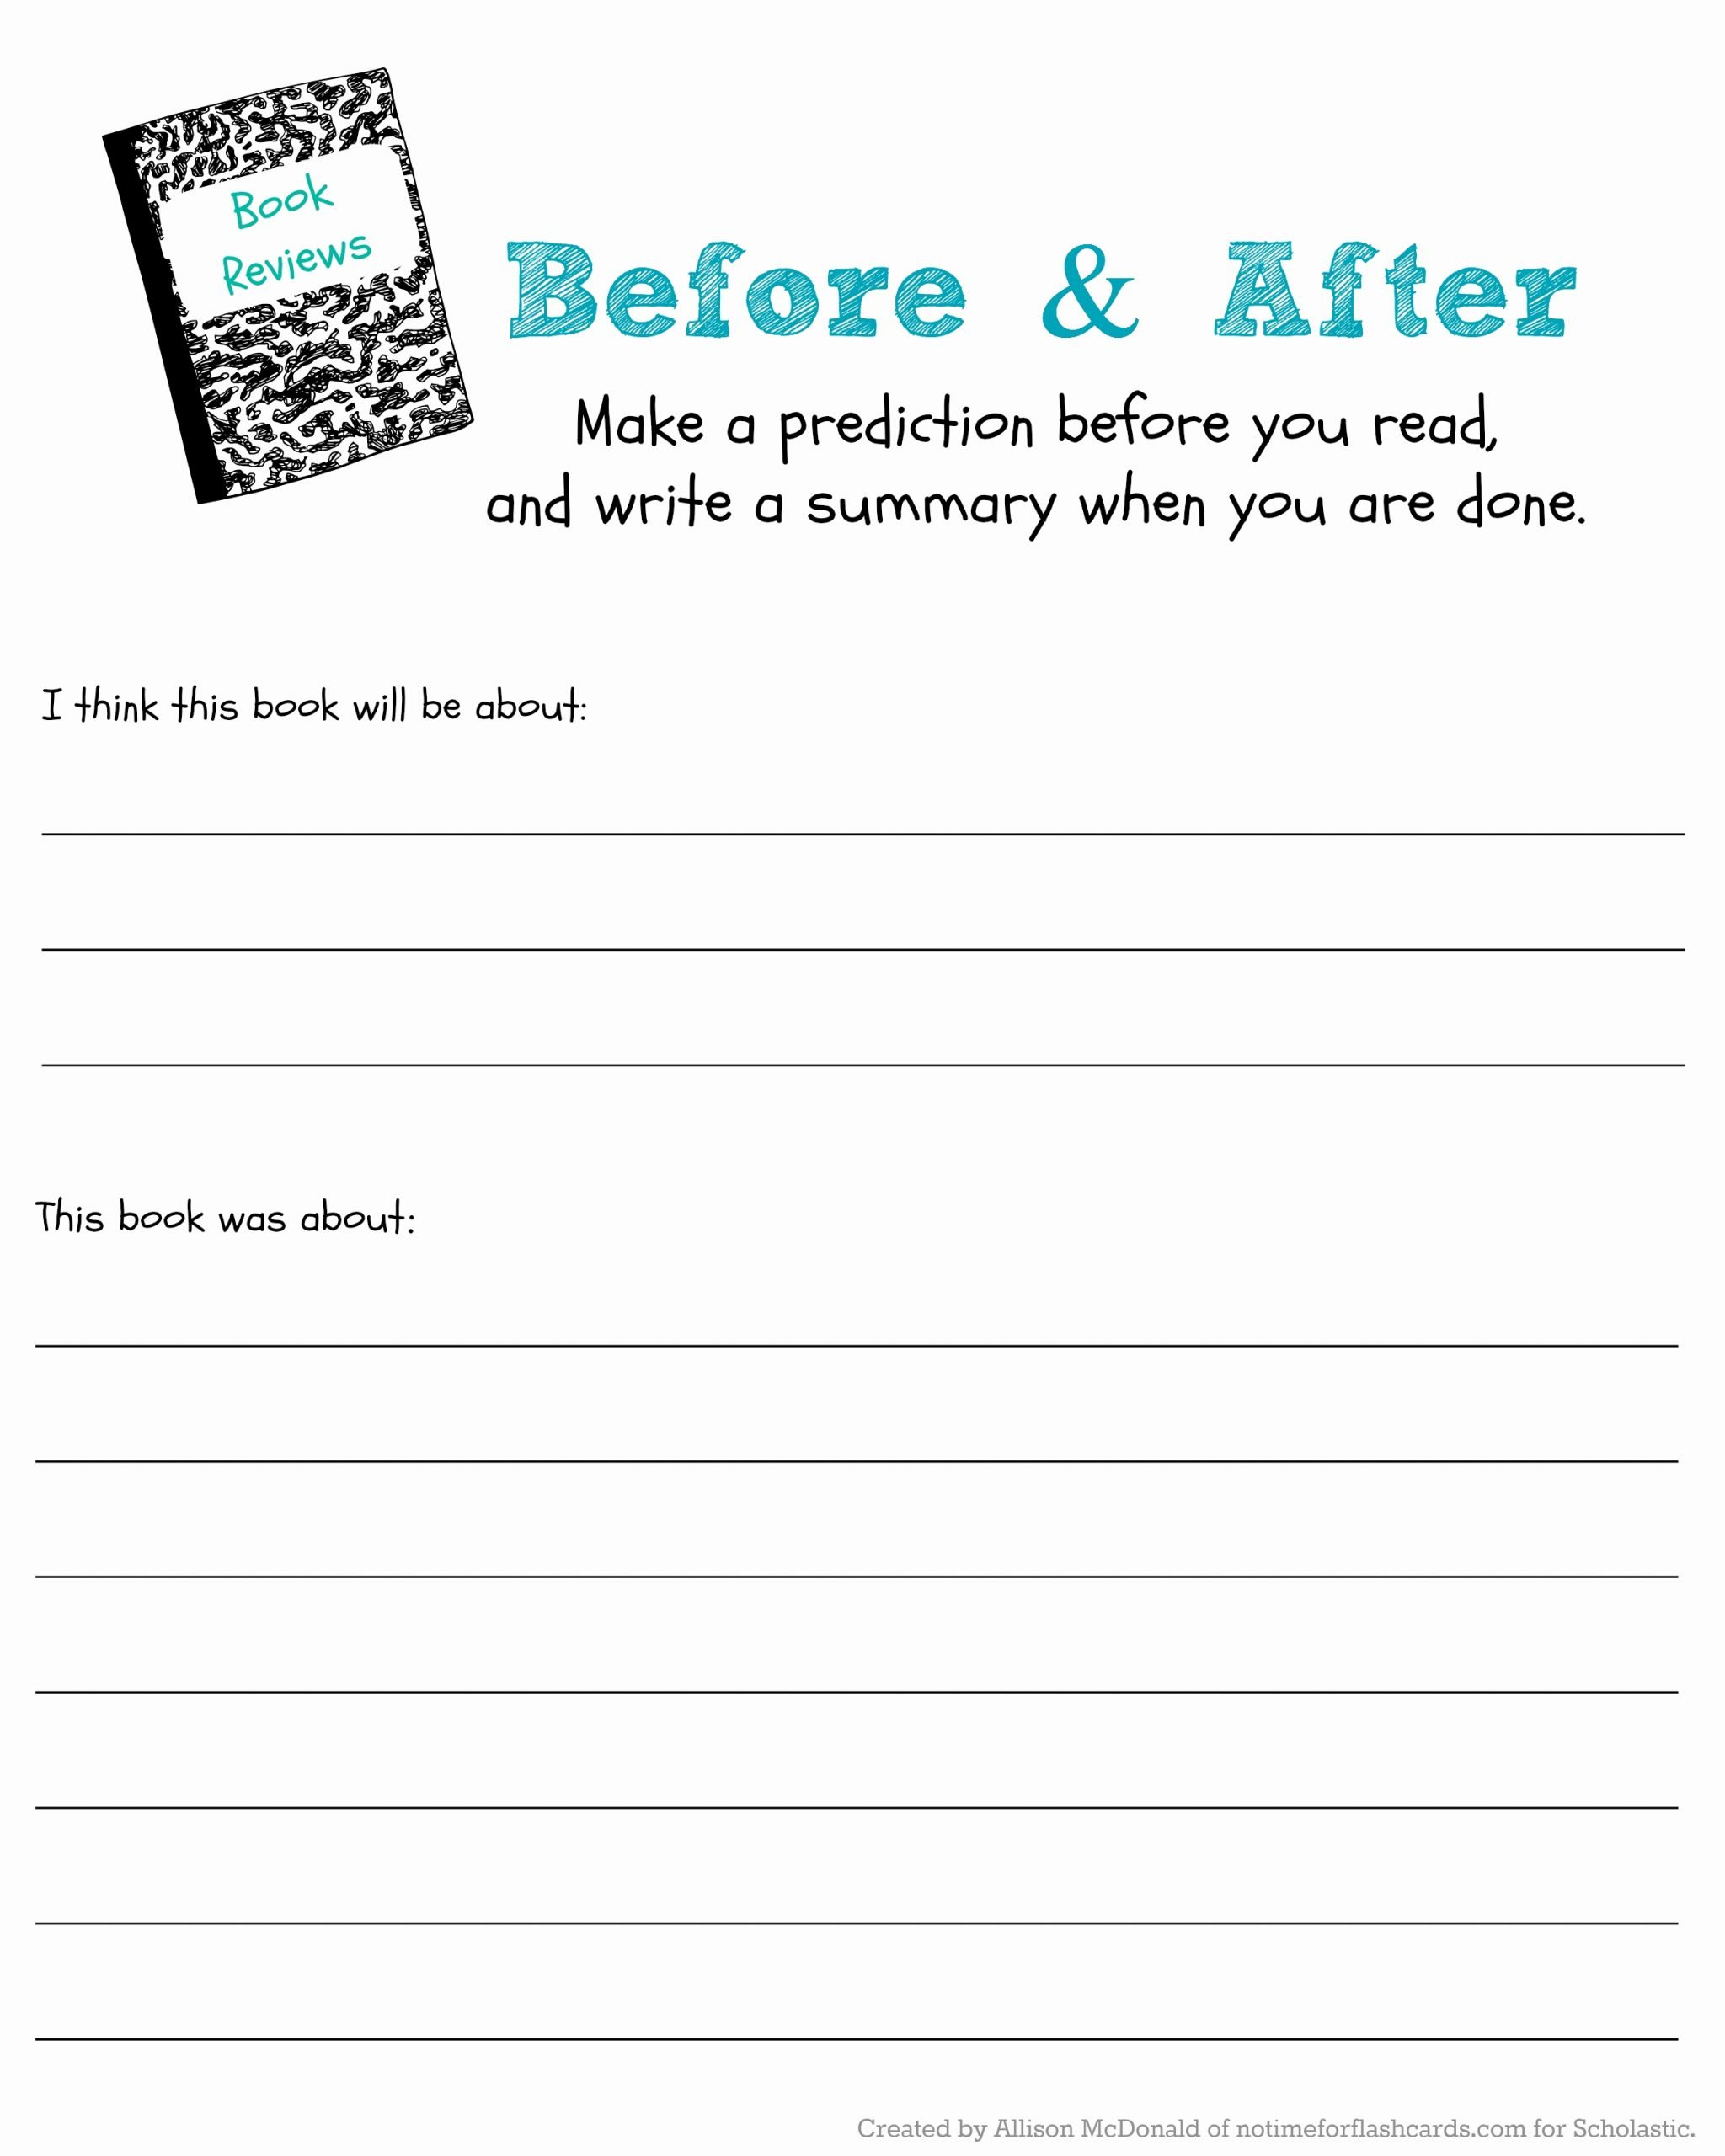 Making Predictions Worksheets 2nd Grade Fresh Judge A Book by Its Cover to Predict & Read